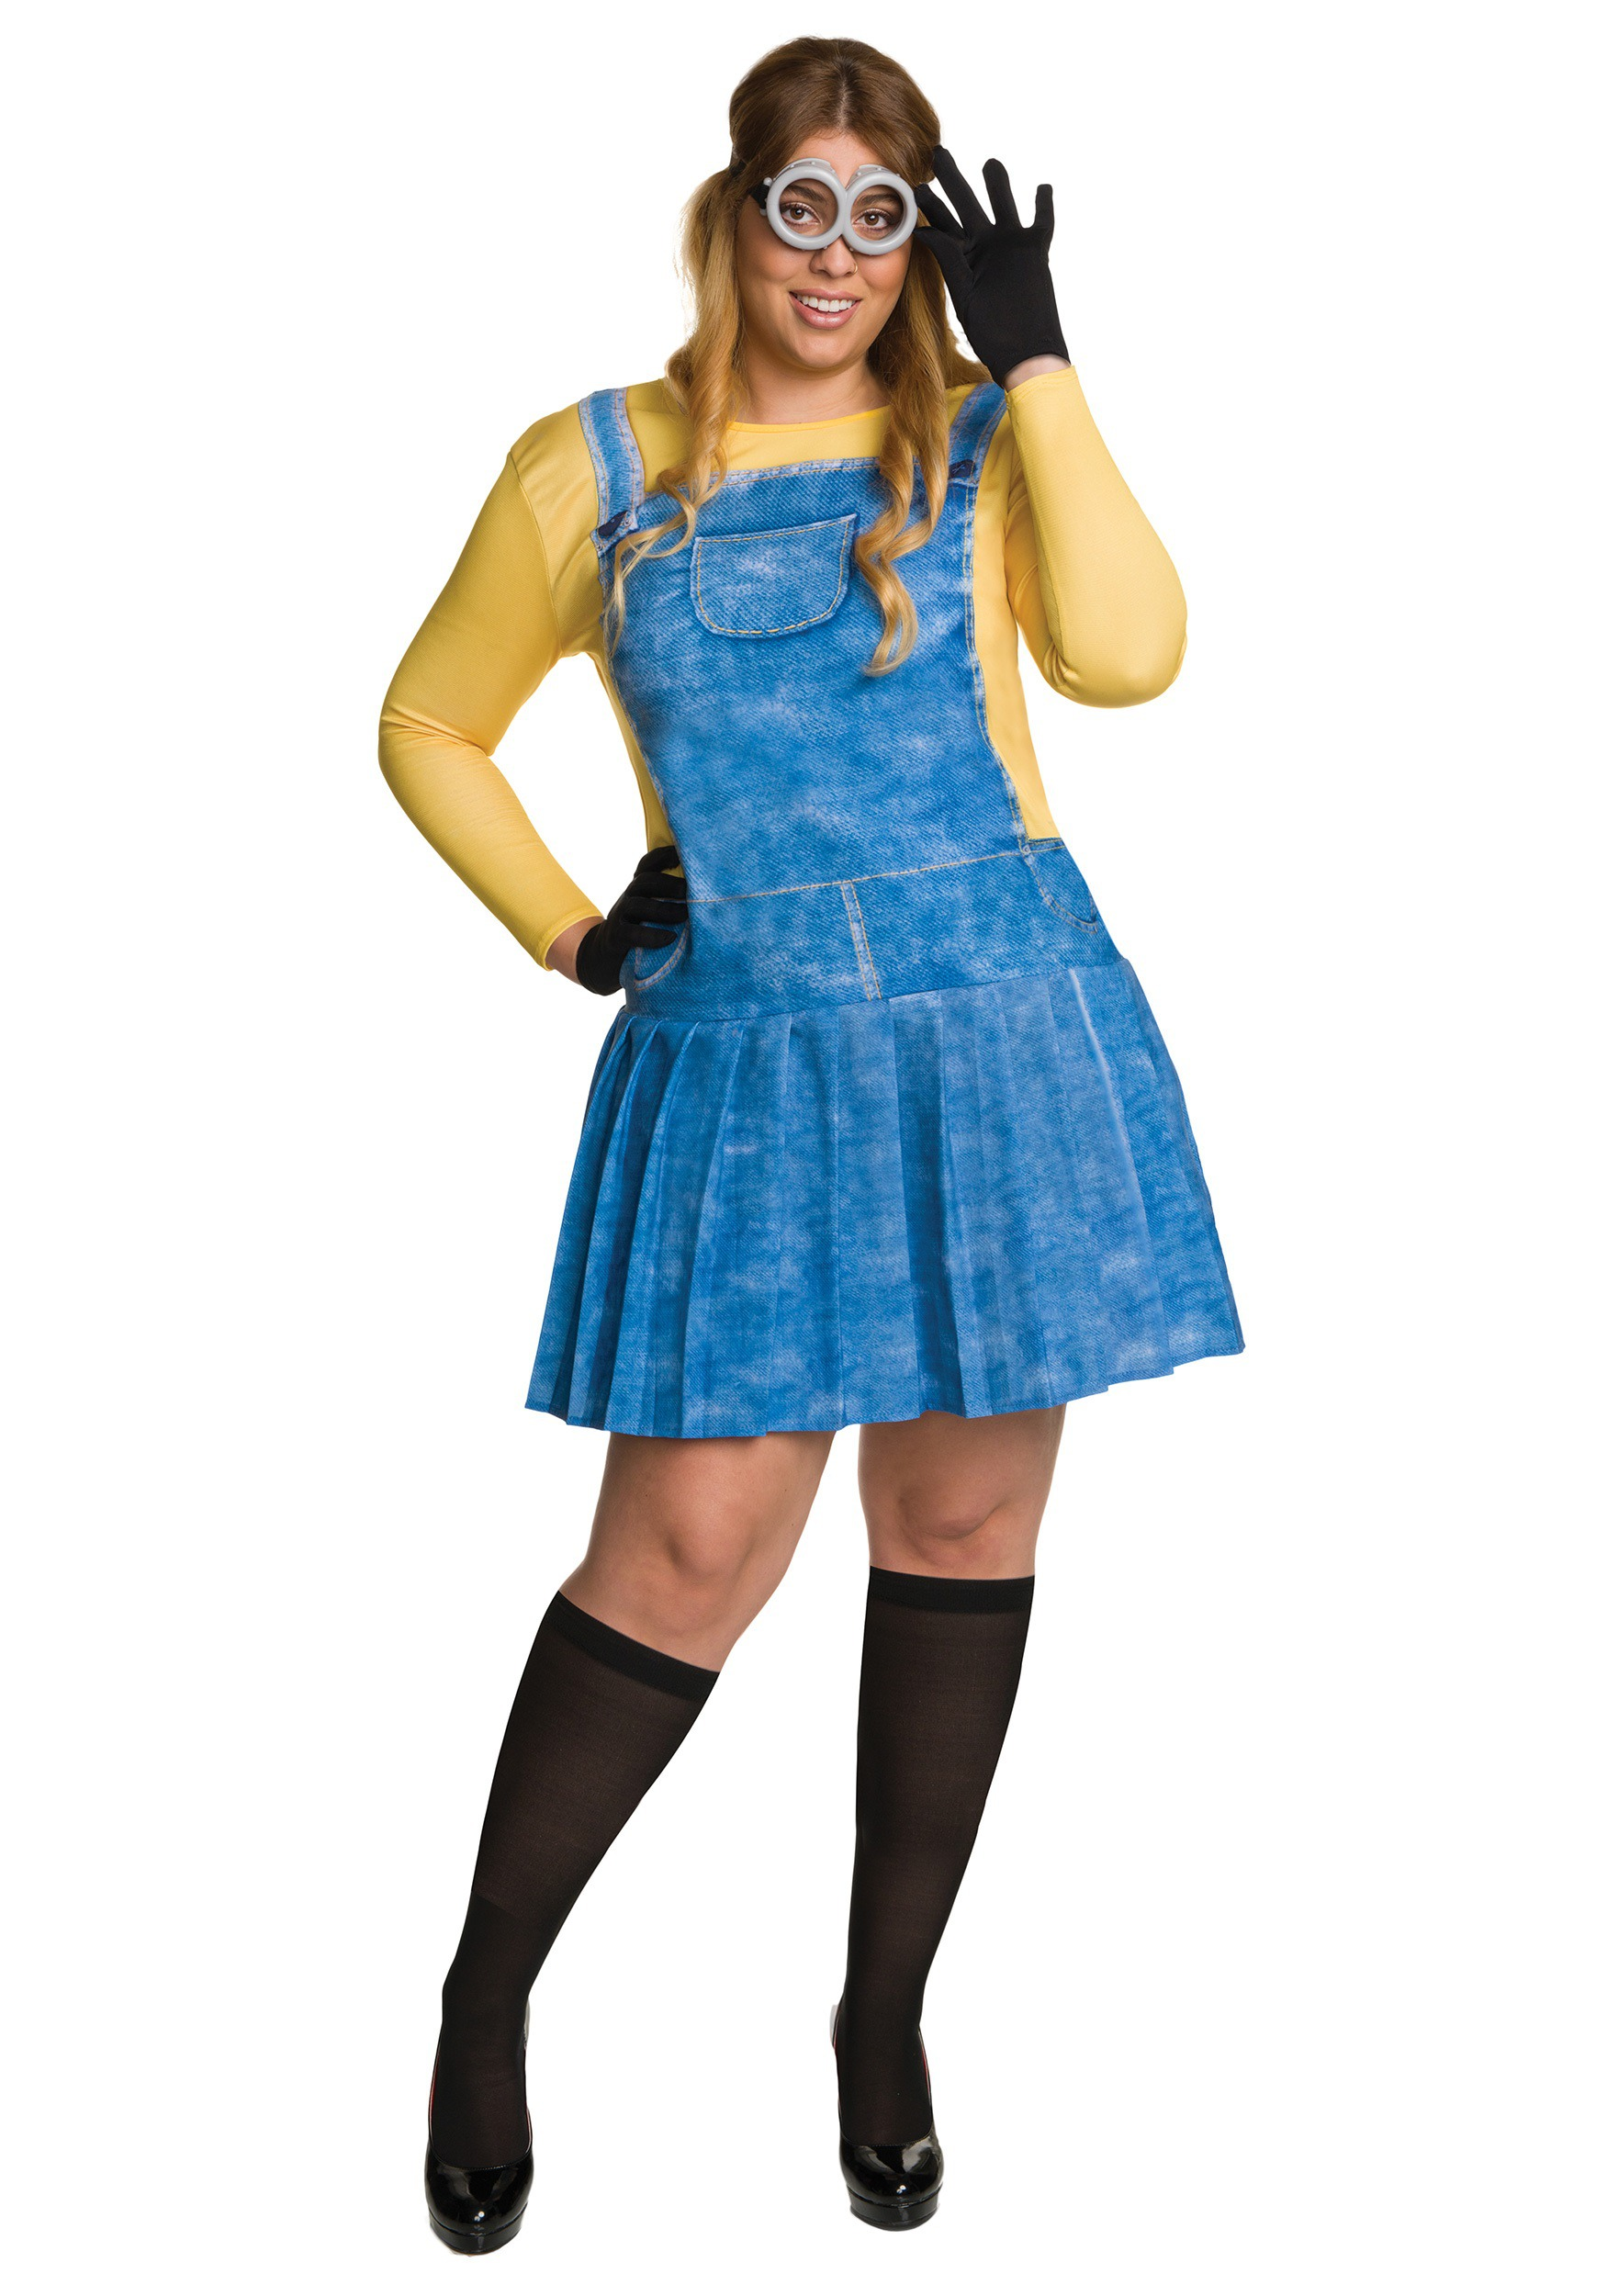 plus-size-female-minion-costume.jpg